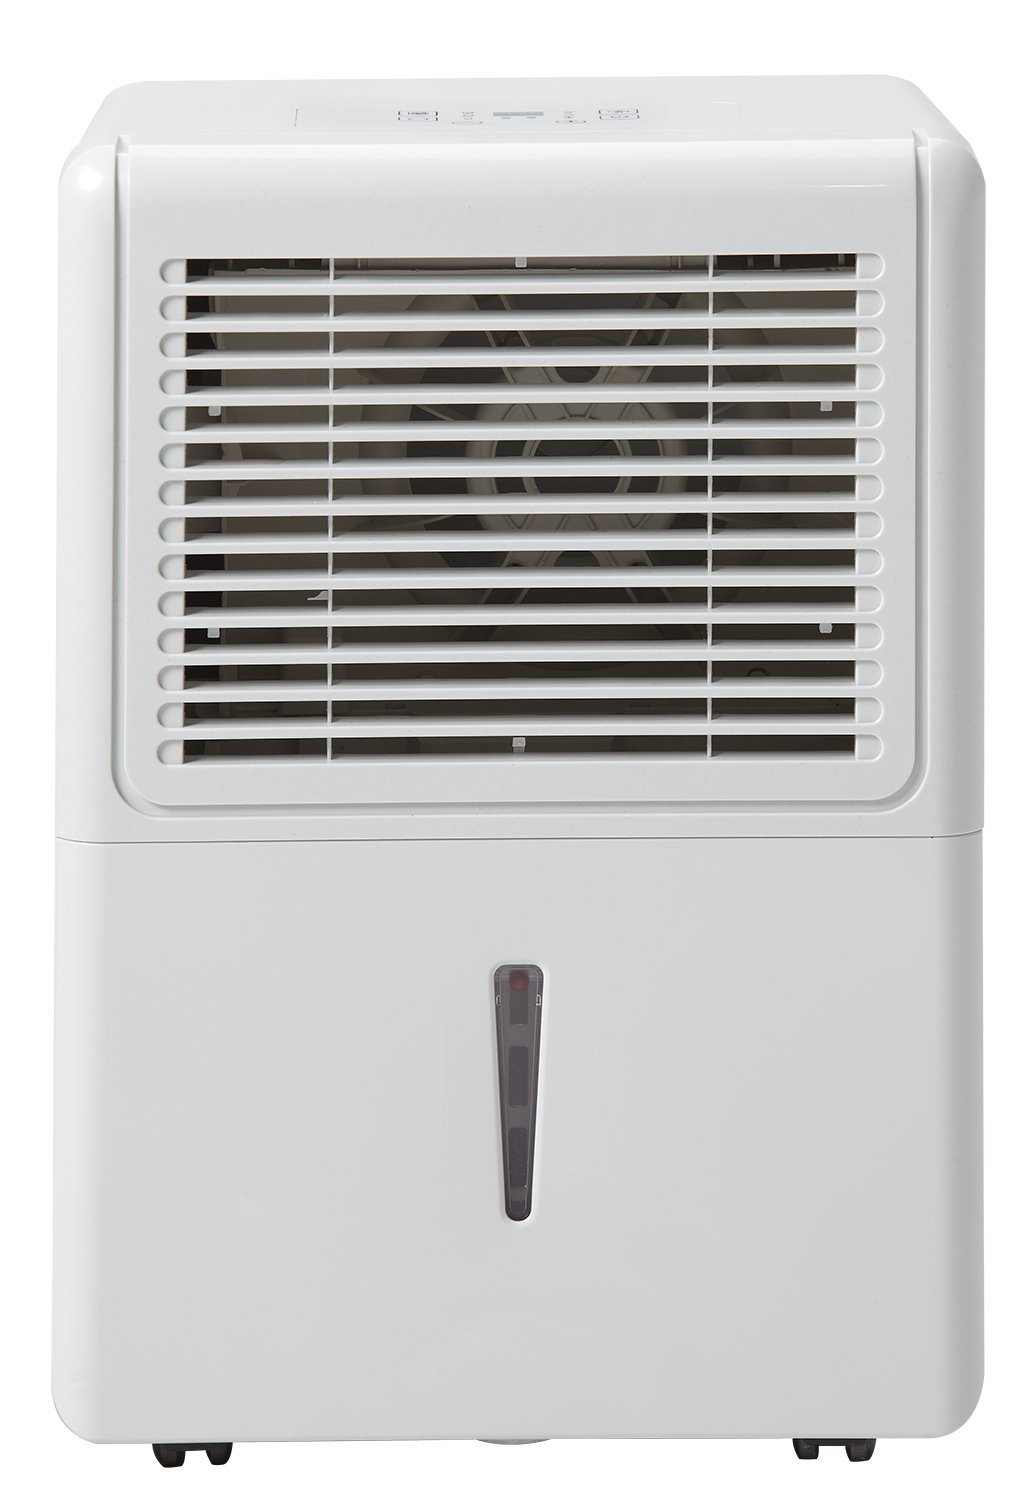 Arctic Aire ADR50B1G 50 Pint Dehumidifier Review